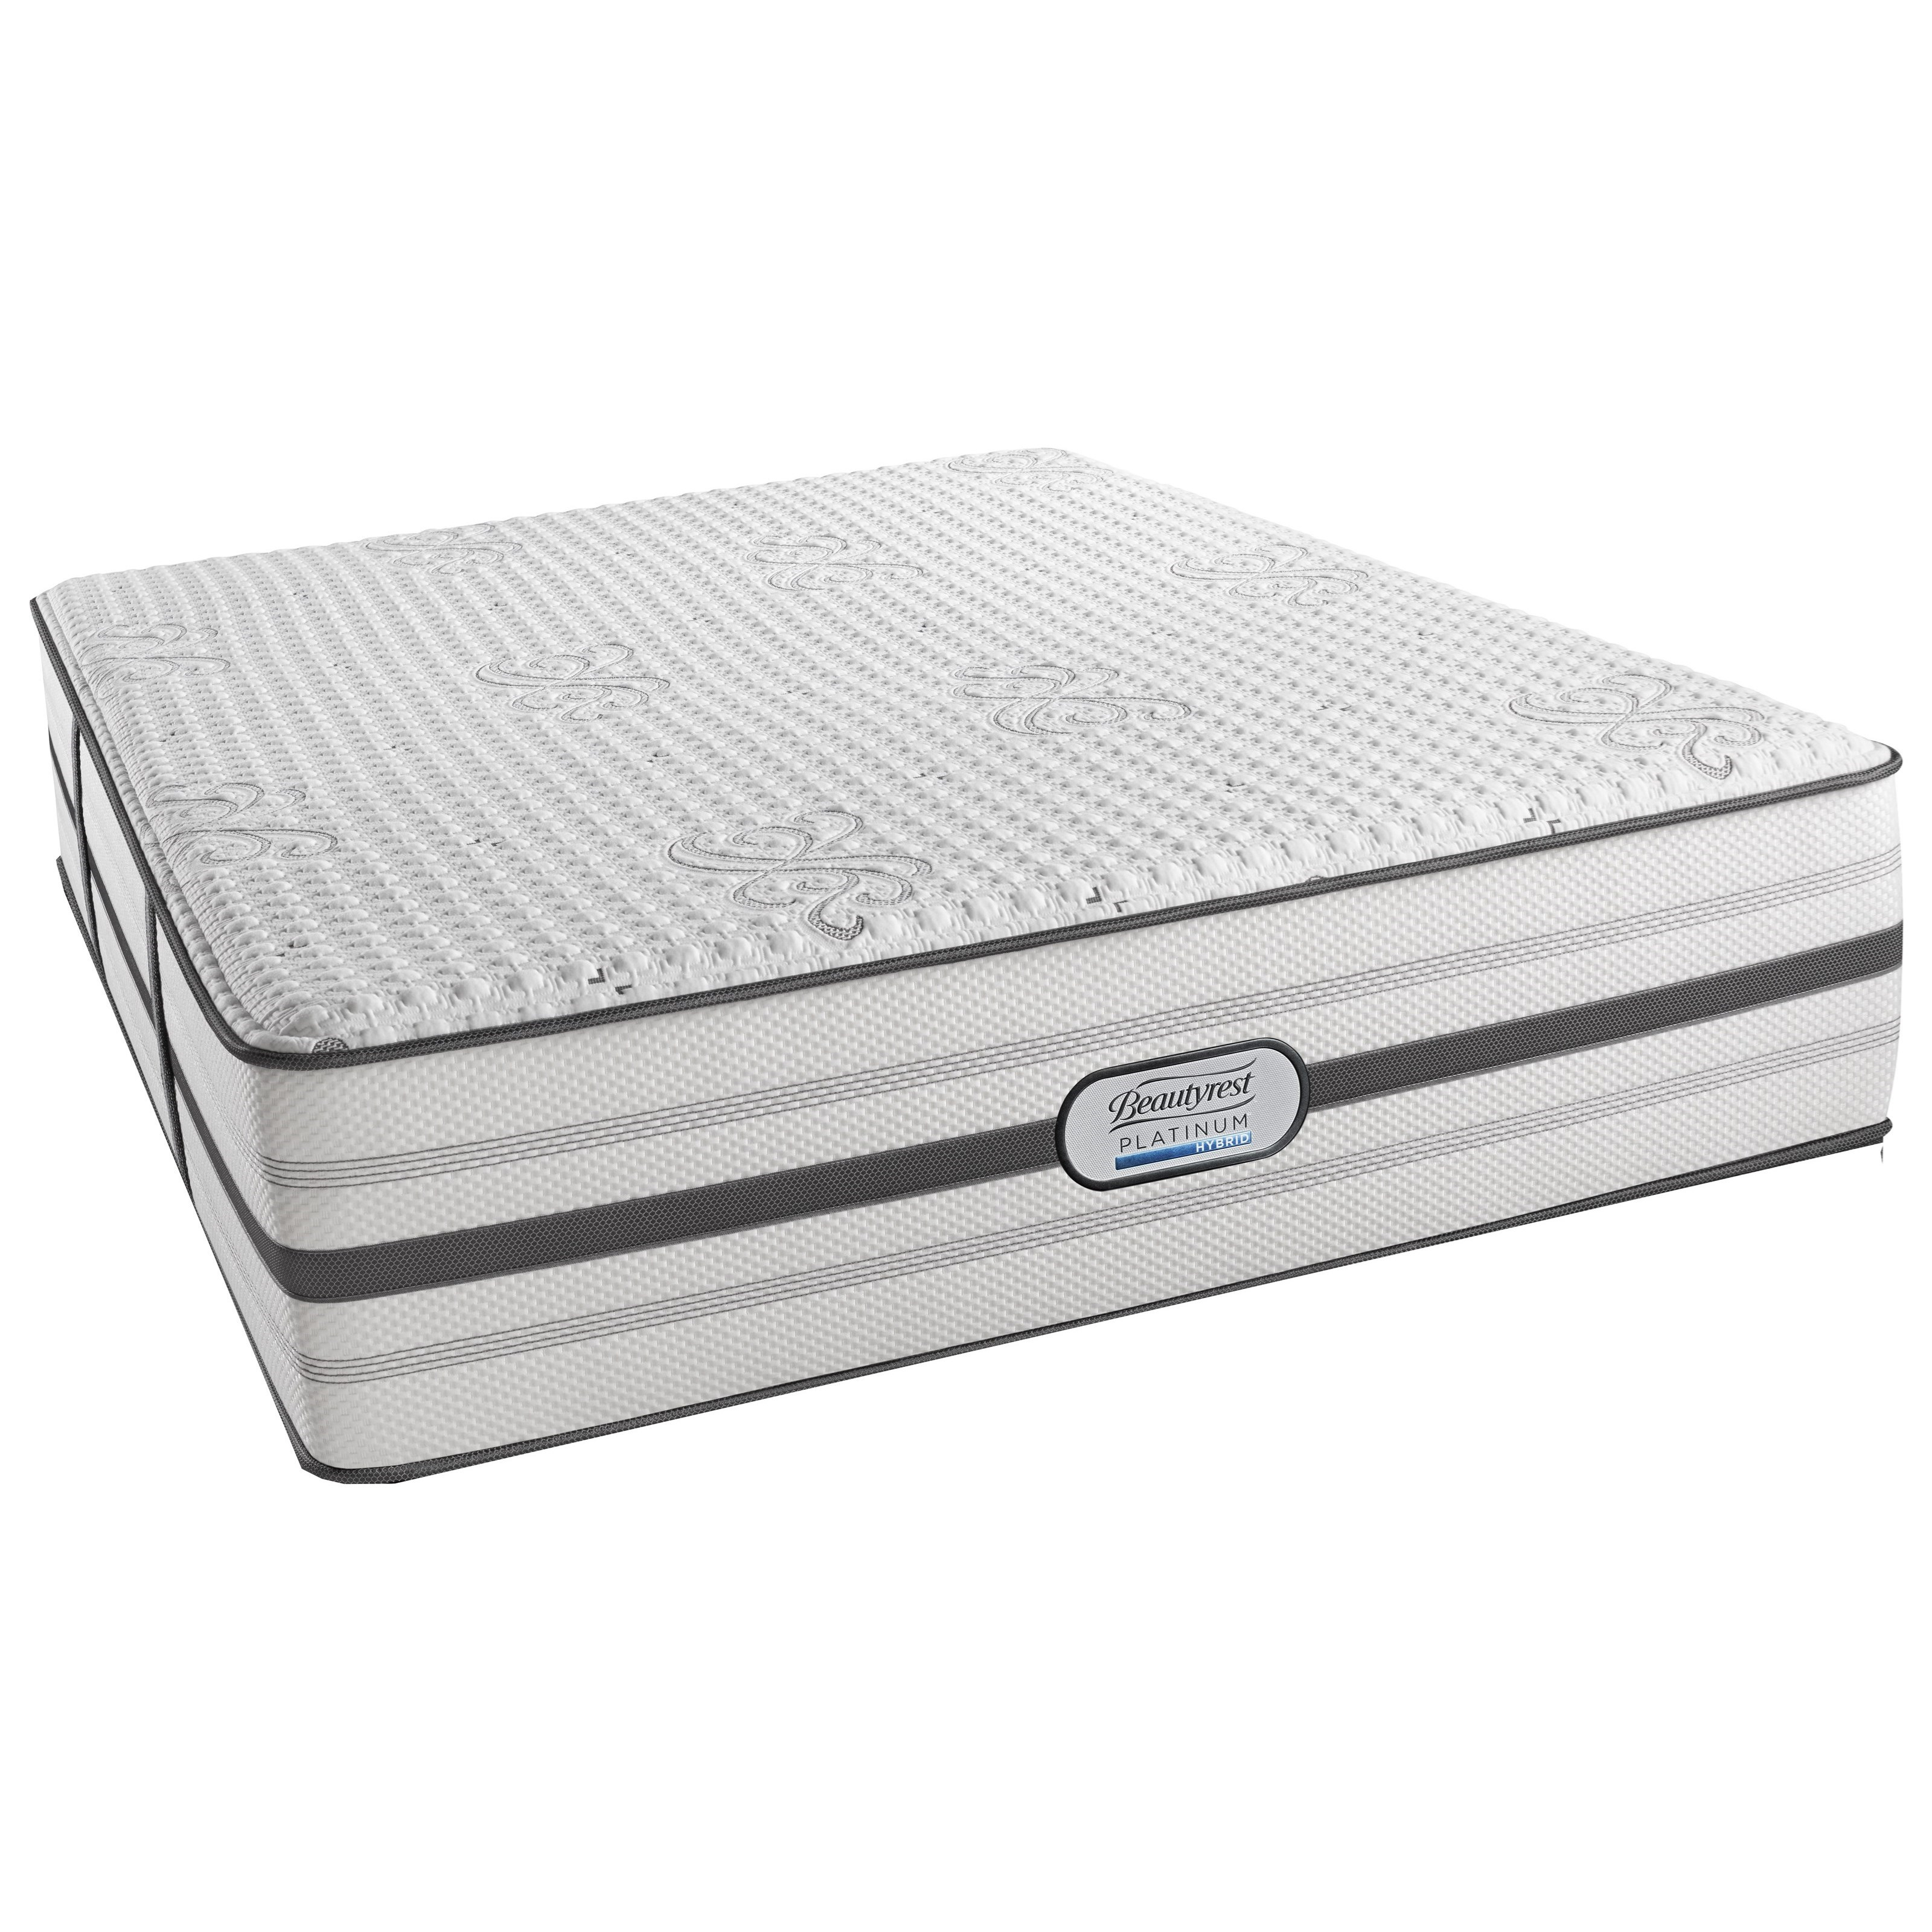 Beautyrest BR Platinum Hybrid Quinn Twin XL Ultra Plush Hybrid Mattress - Item Number: BRHLV4UPL-TXL